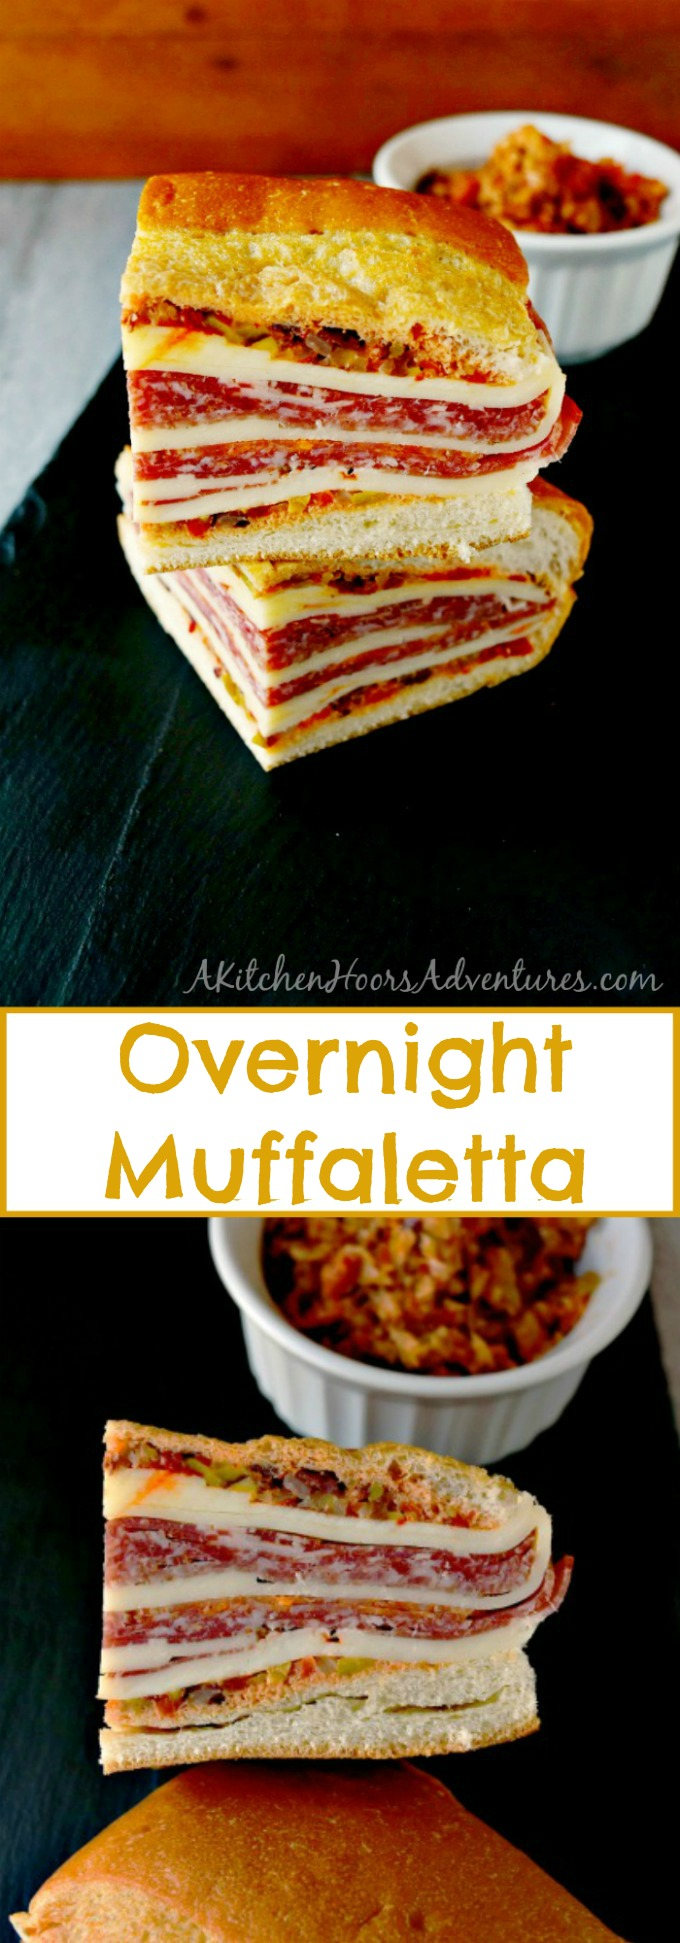 This is a muffalata you could easy make for a crowd or a picnic. Overnight Muffalata Sandwich is quick to make but tastes oh so delicious! Laissez les bons temps rouler!!